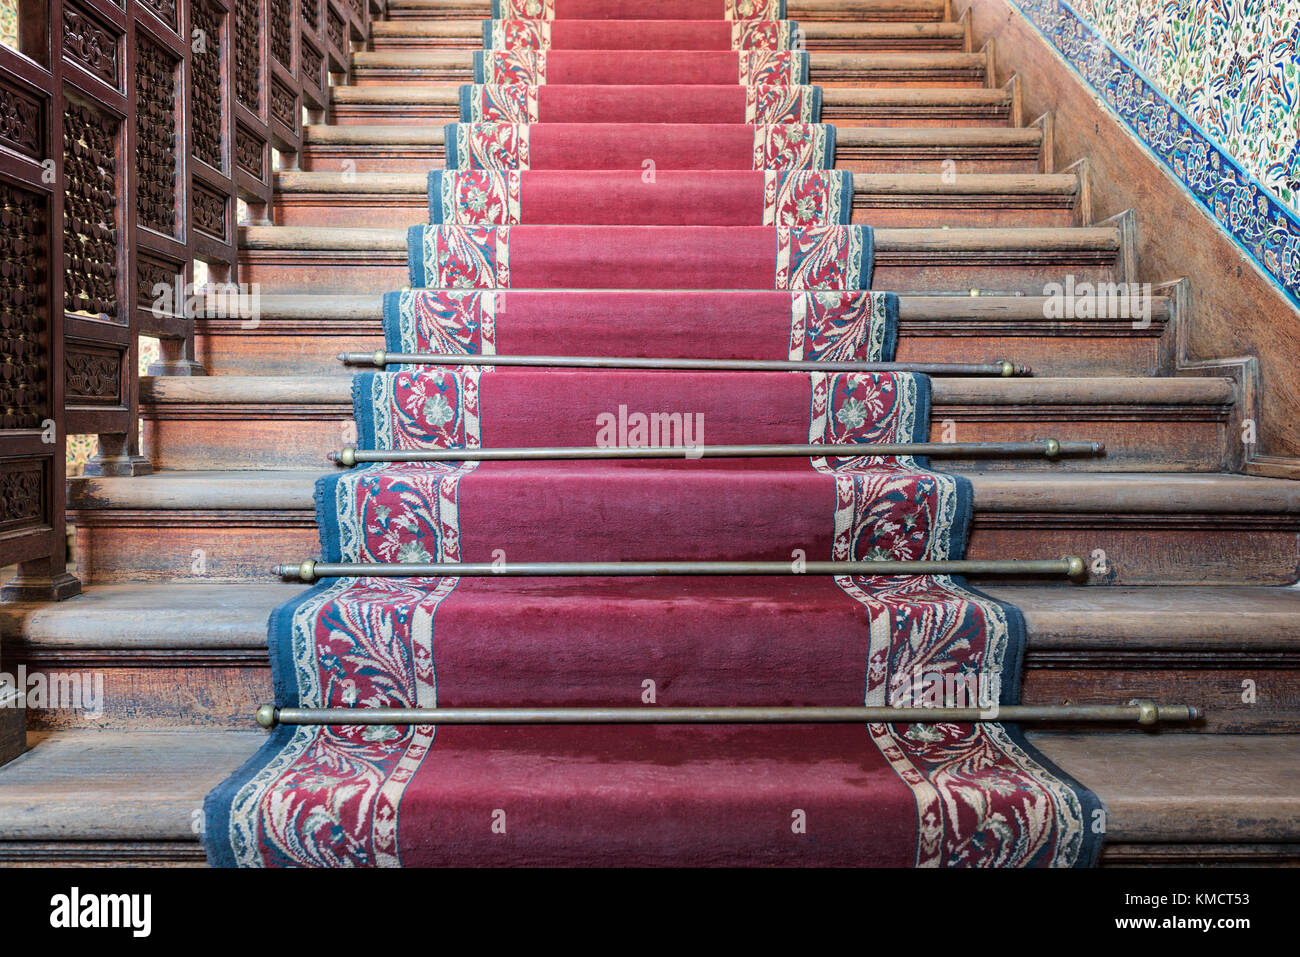 Front view of old ascending wooden stairs with ornate red carpet and wooden balustrade - Stock Image